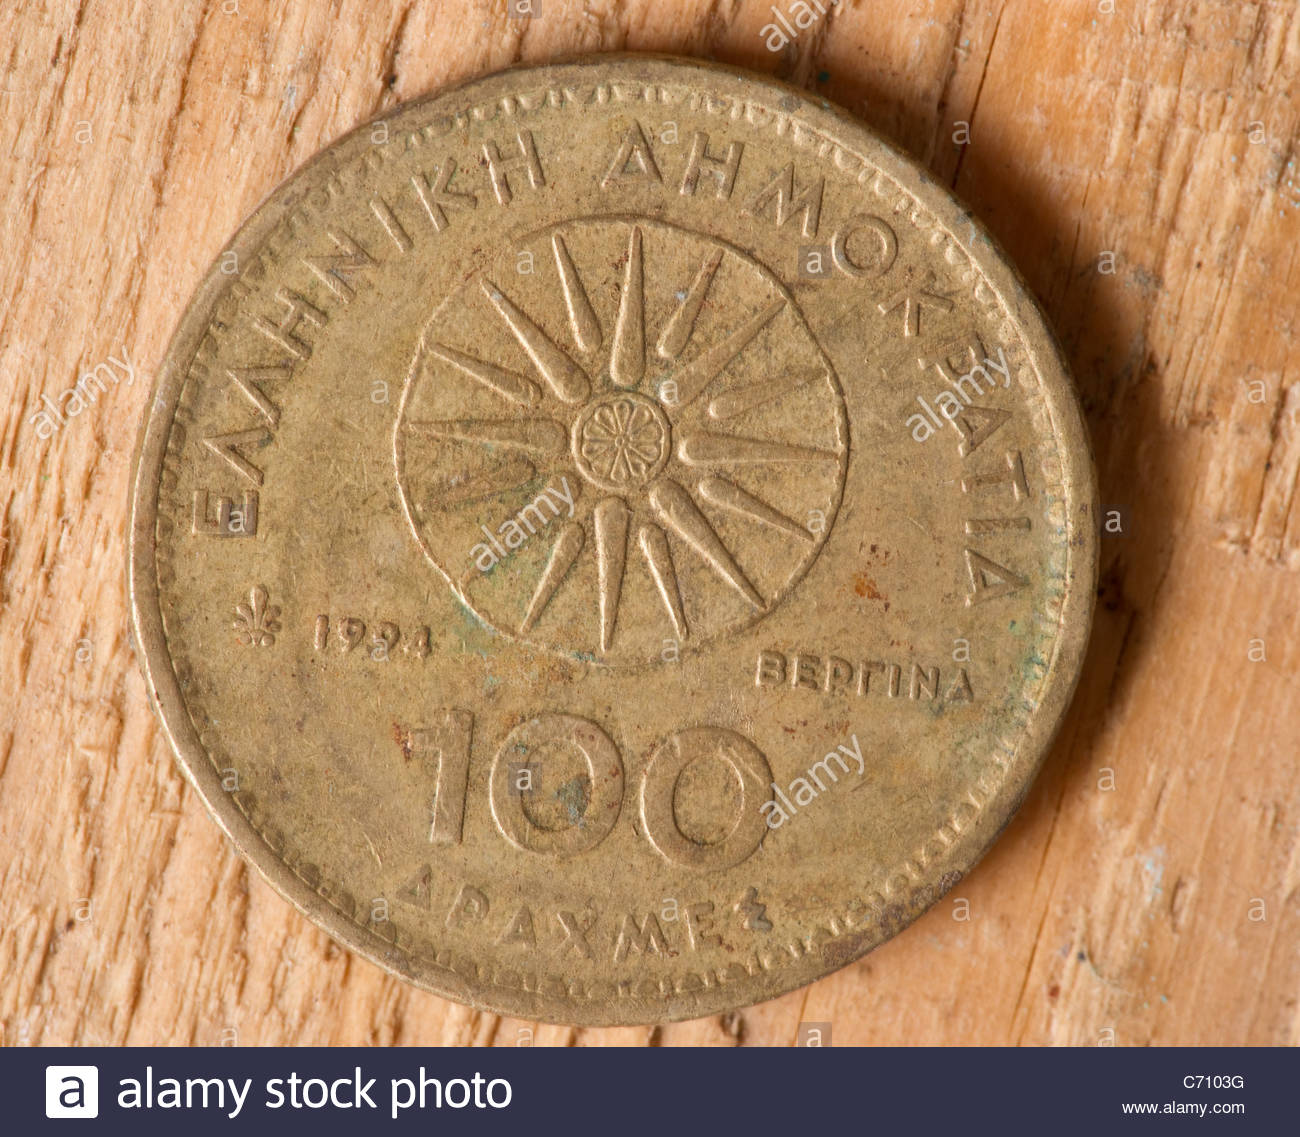 Old Greek money Drachma coin Greece 100 - Stock Image